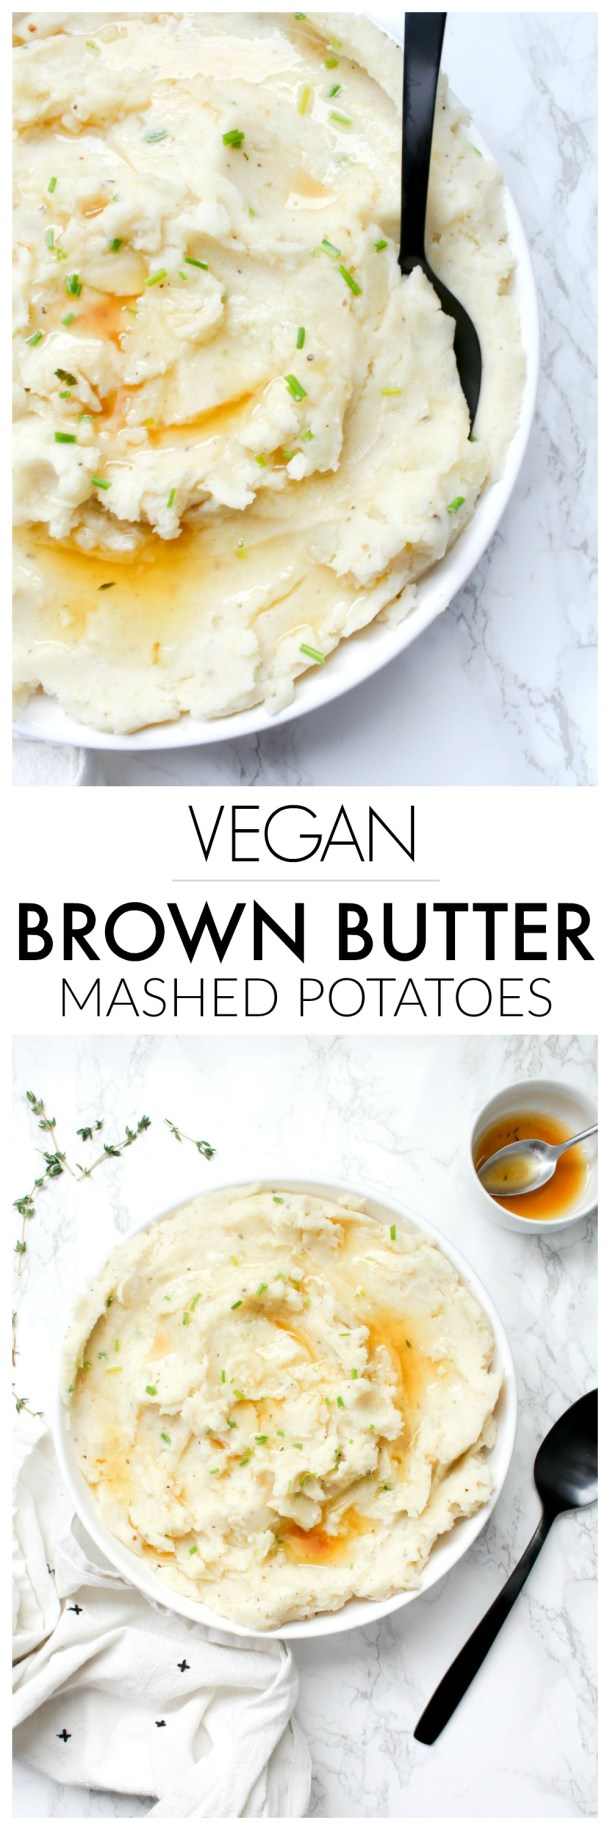 These Vegan Brown Butter Mashed Potatoes are what potato dreams are made of - these will be the star of the show at your next holiday dinner | ThisSavoryVegan.com #thissavoryvegan #veganthanksgiving #mashedpotatoes